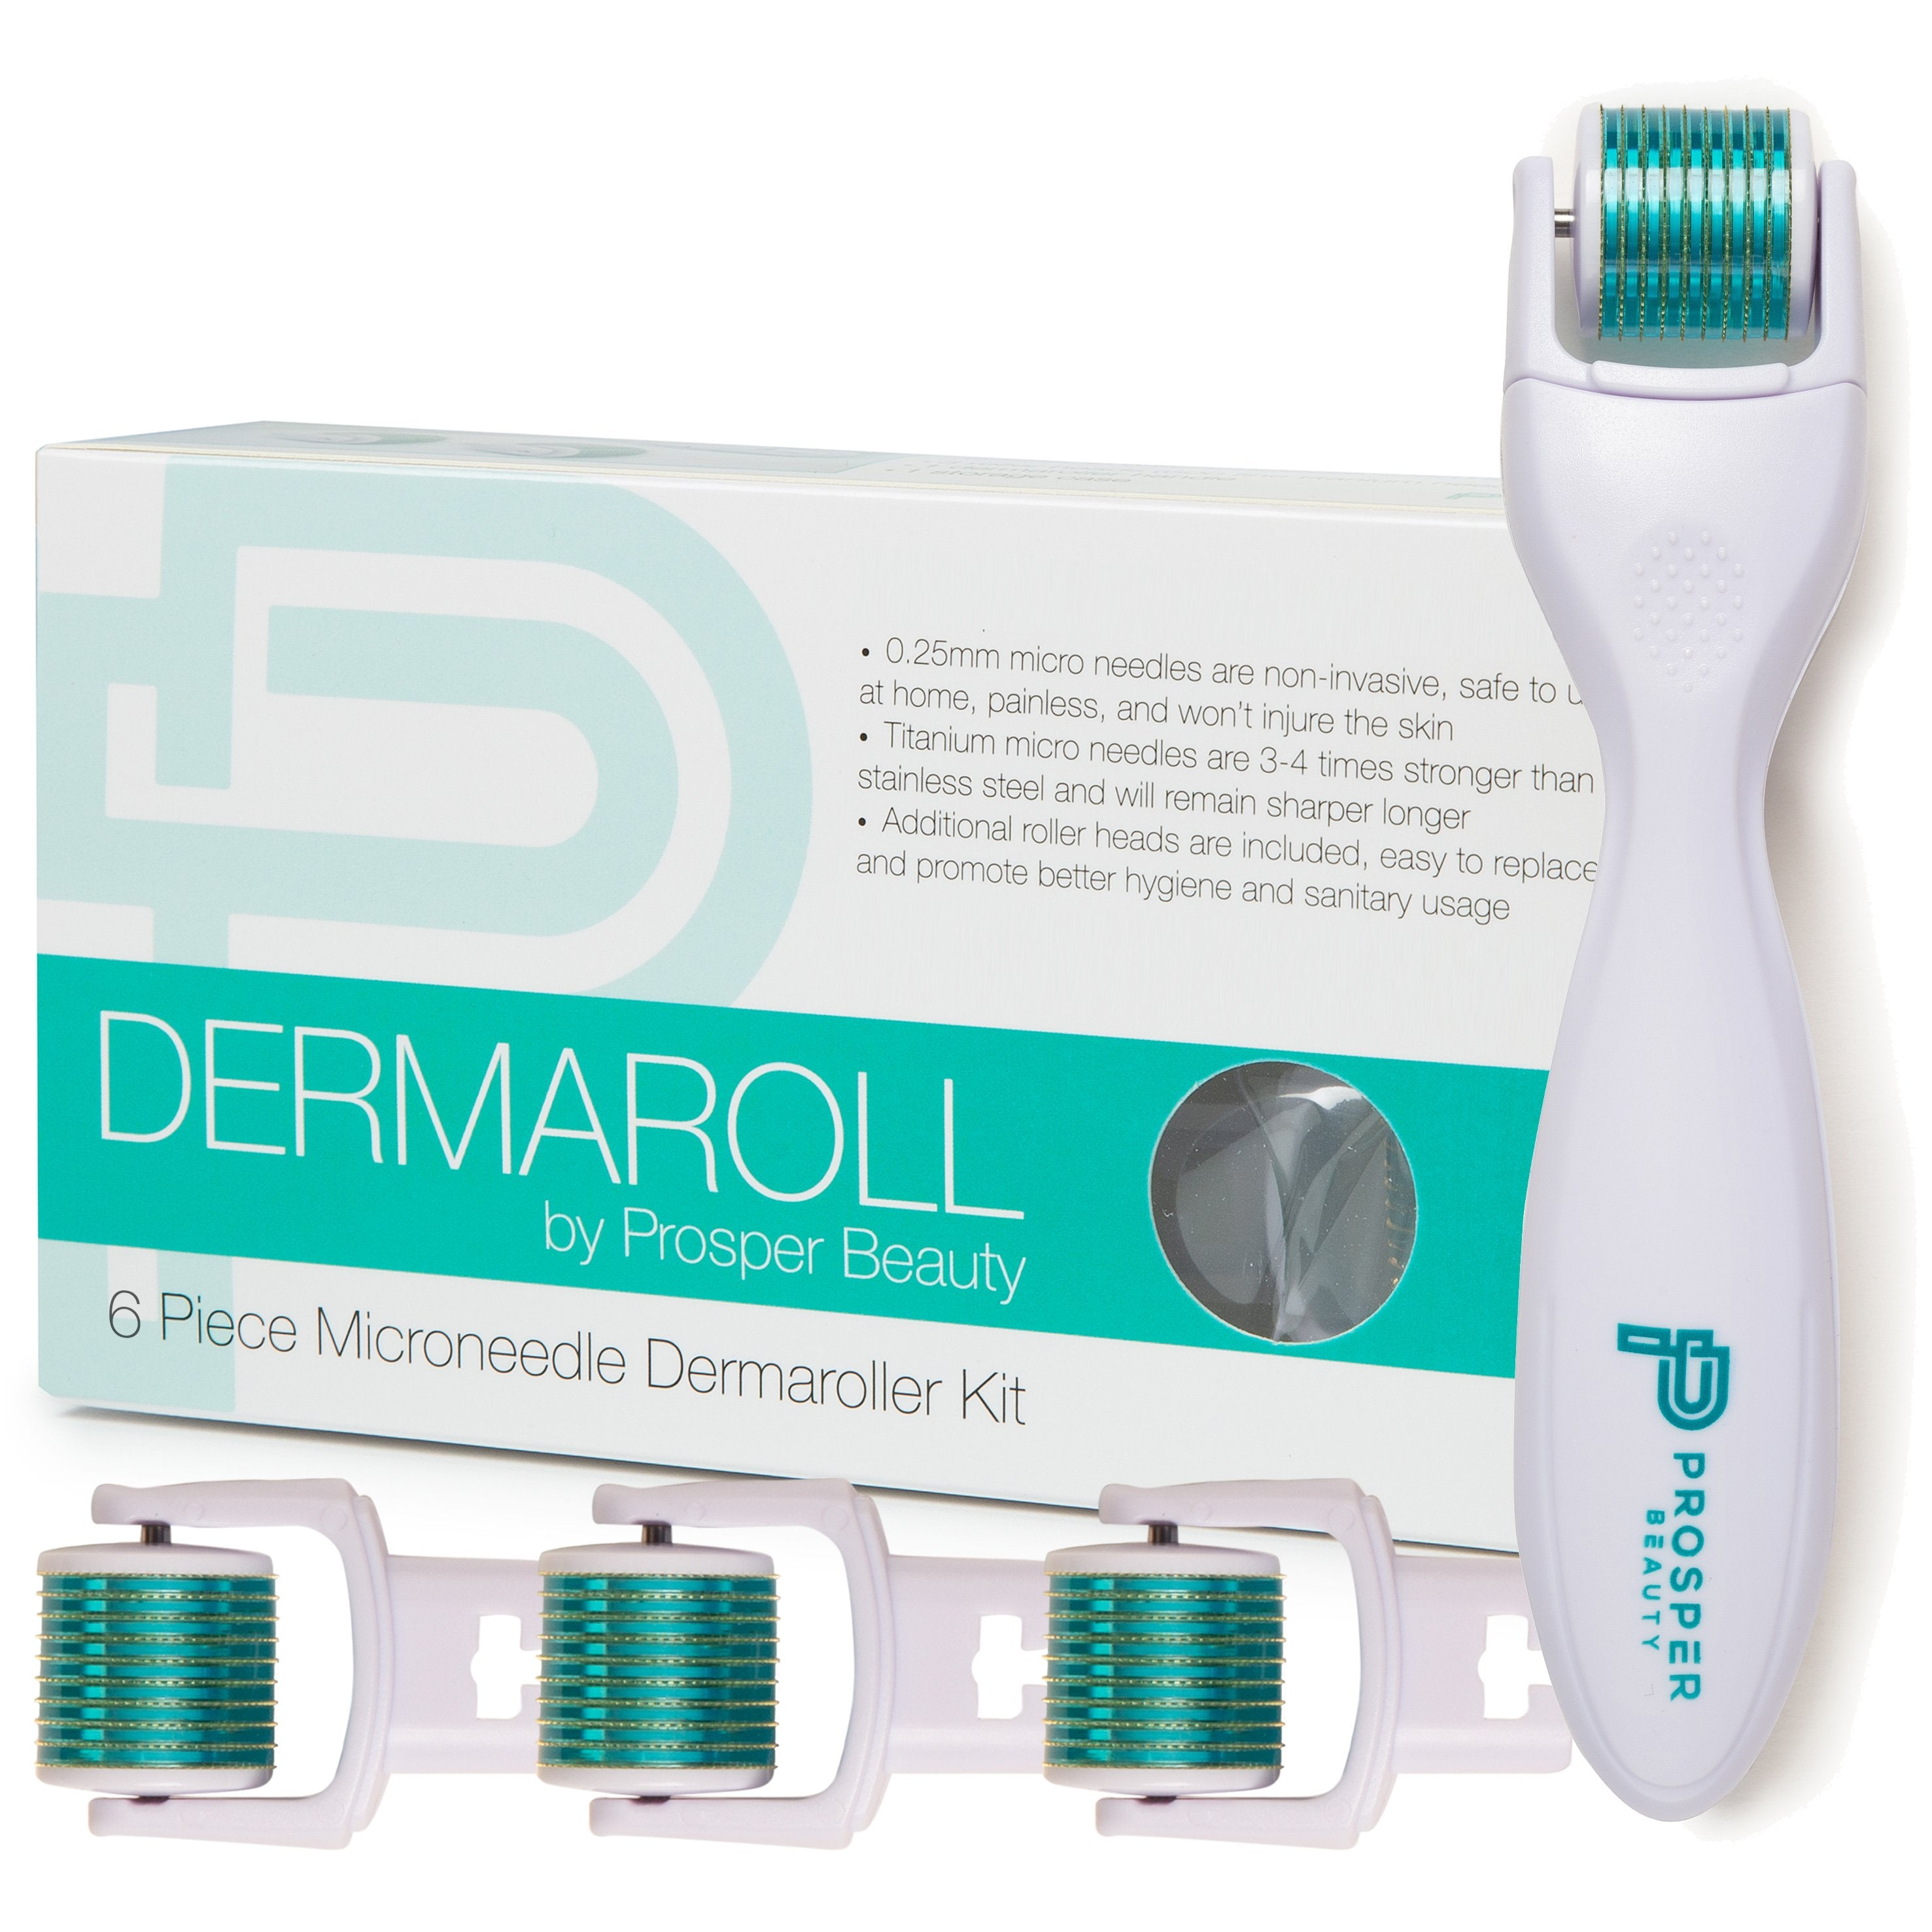 DERMAROLL by Prosper Beauty (6 Piece Microneedle Derma Roller Kit 0.25mm)